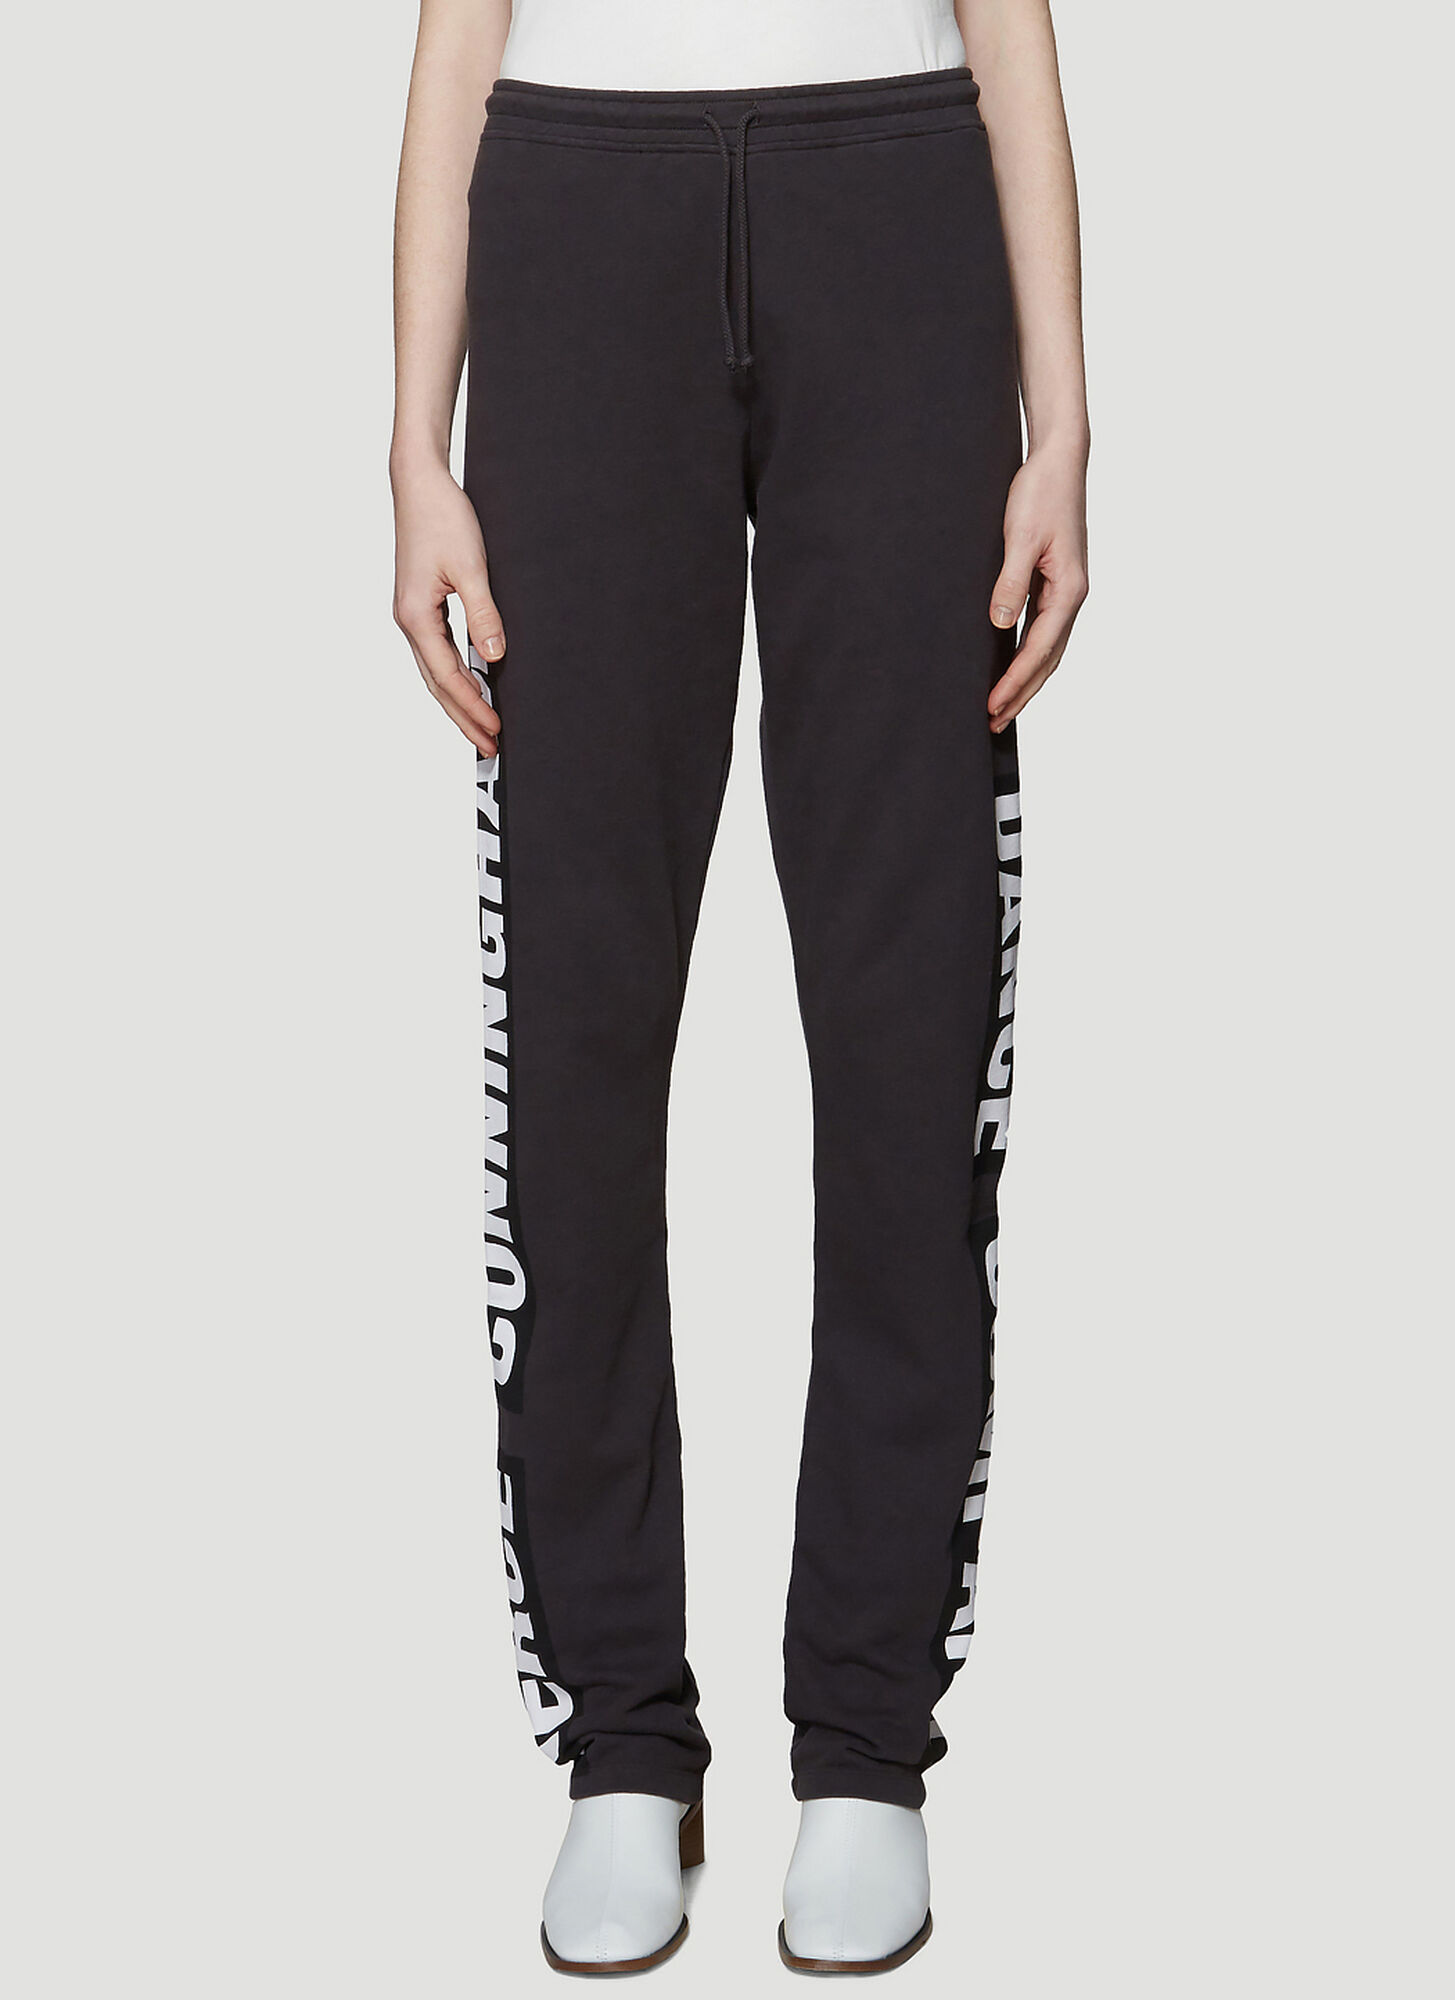 Acne Studios Printed Track Pants in Black